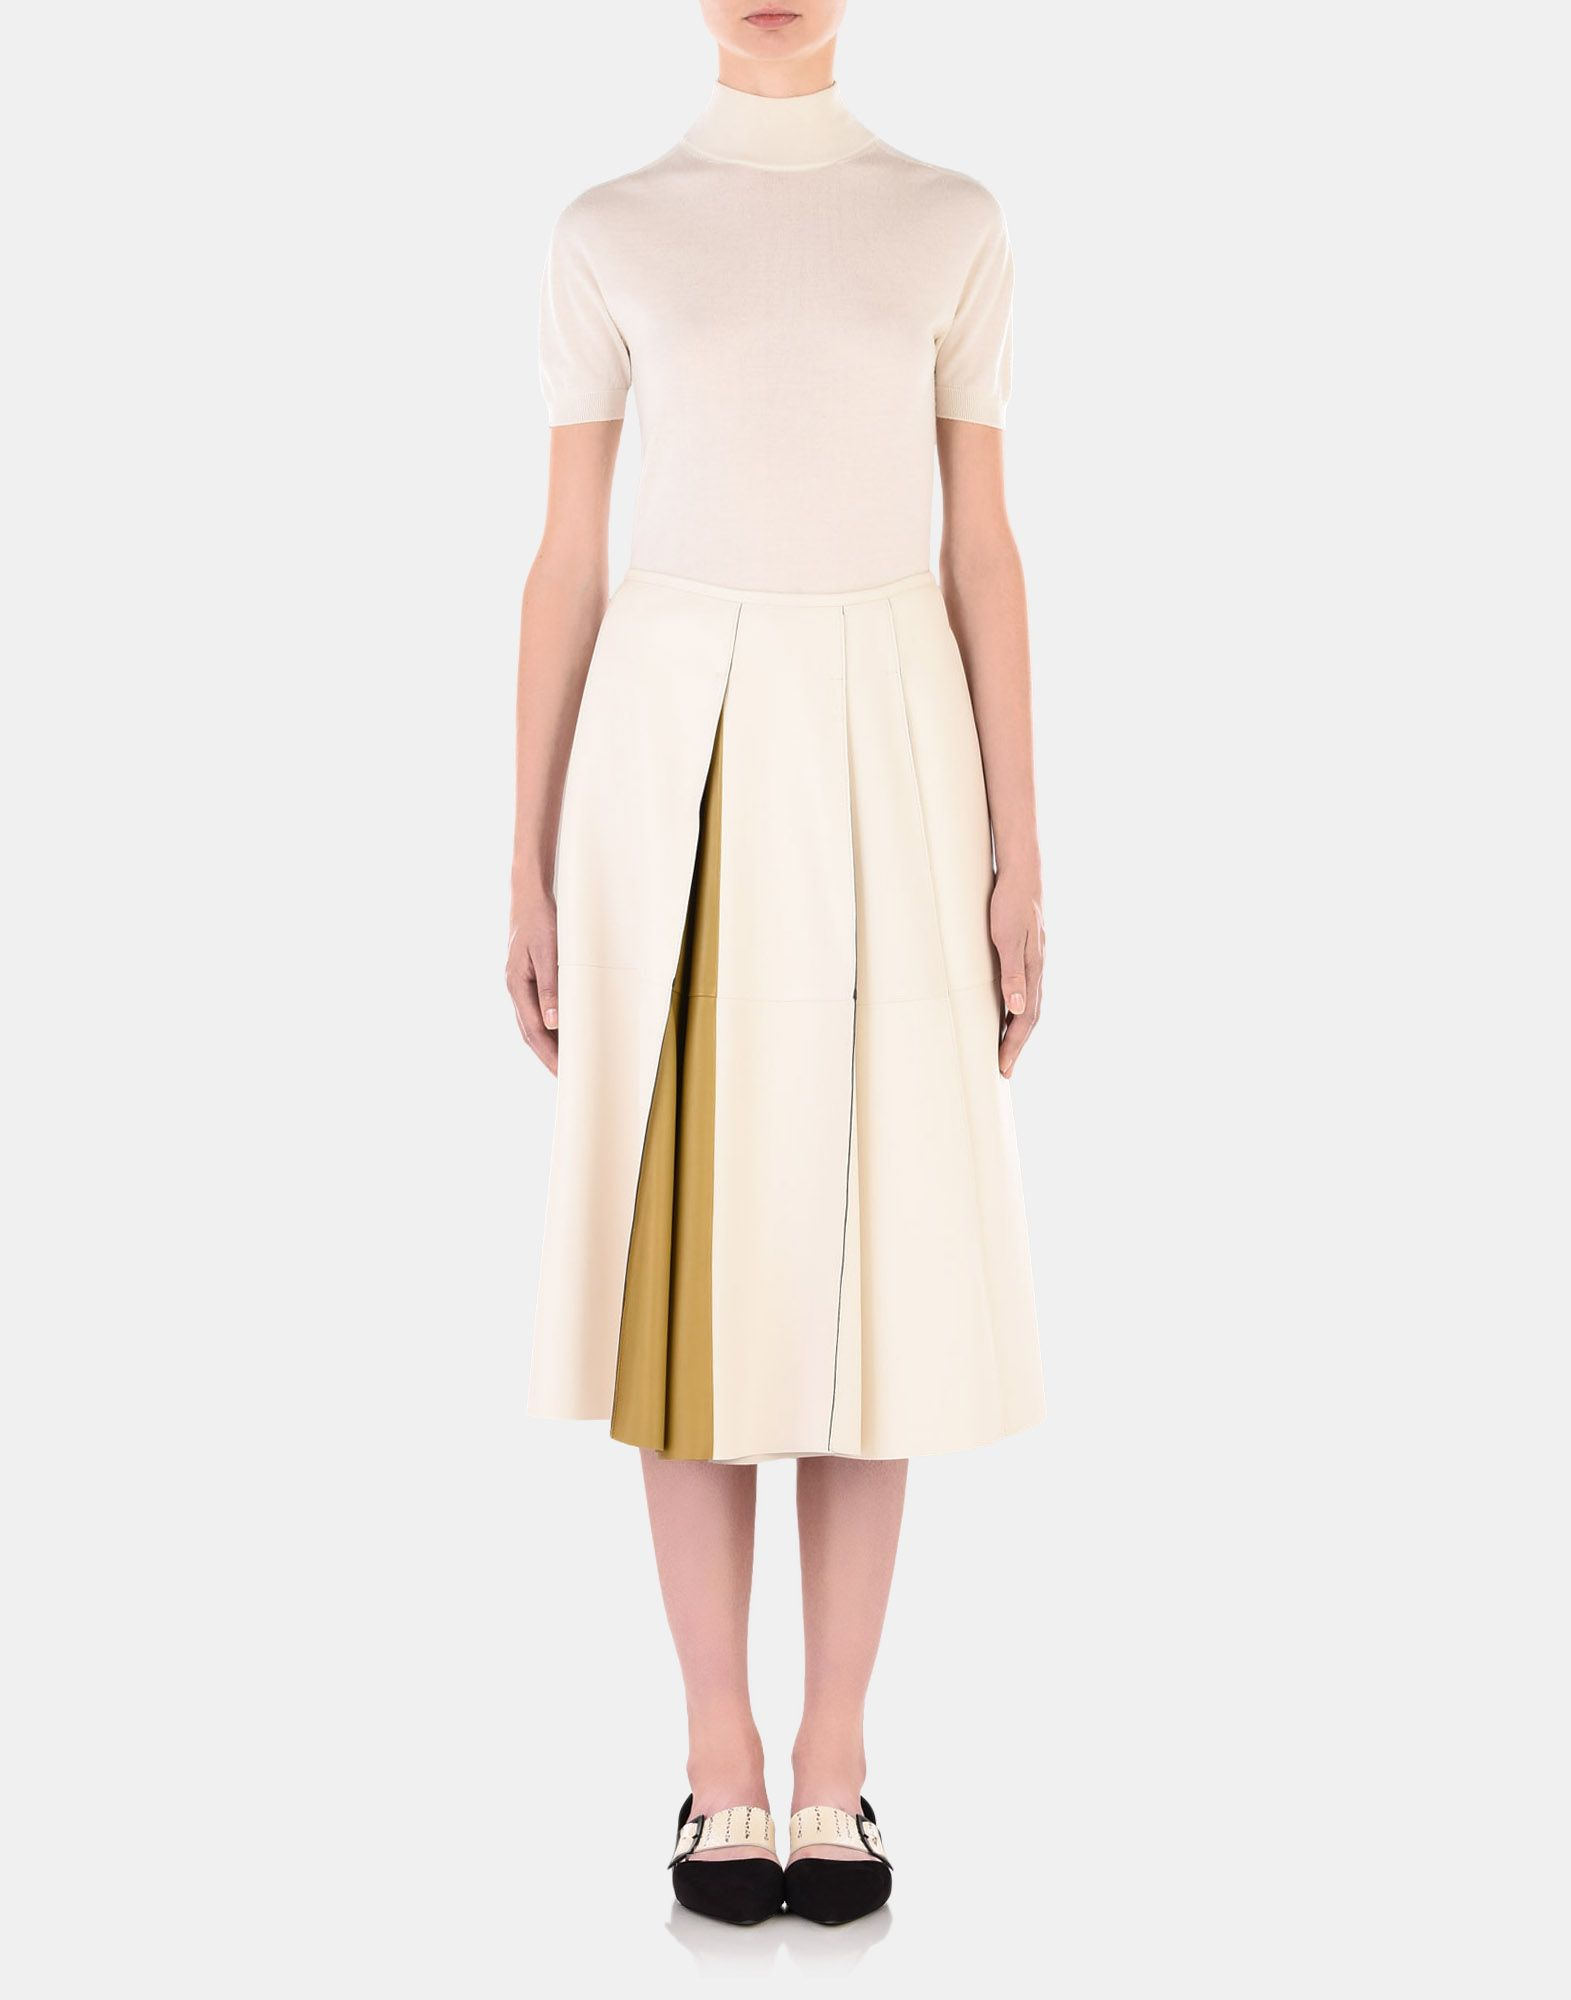 Leather skirt - JIL SANDER Online Store